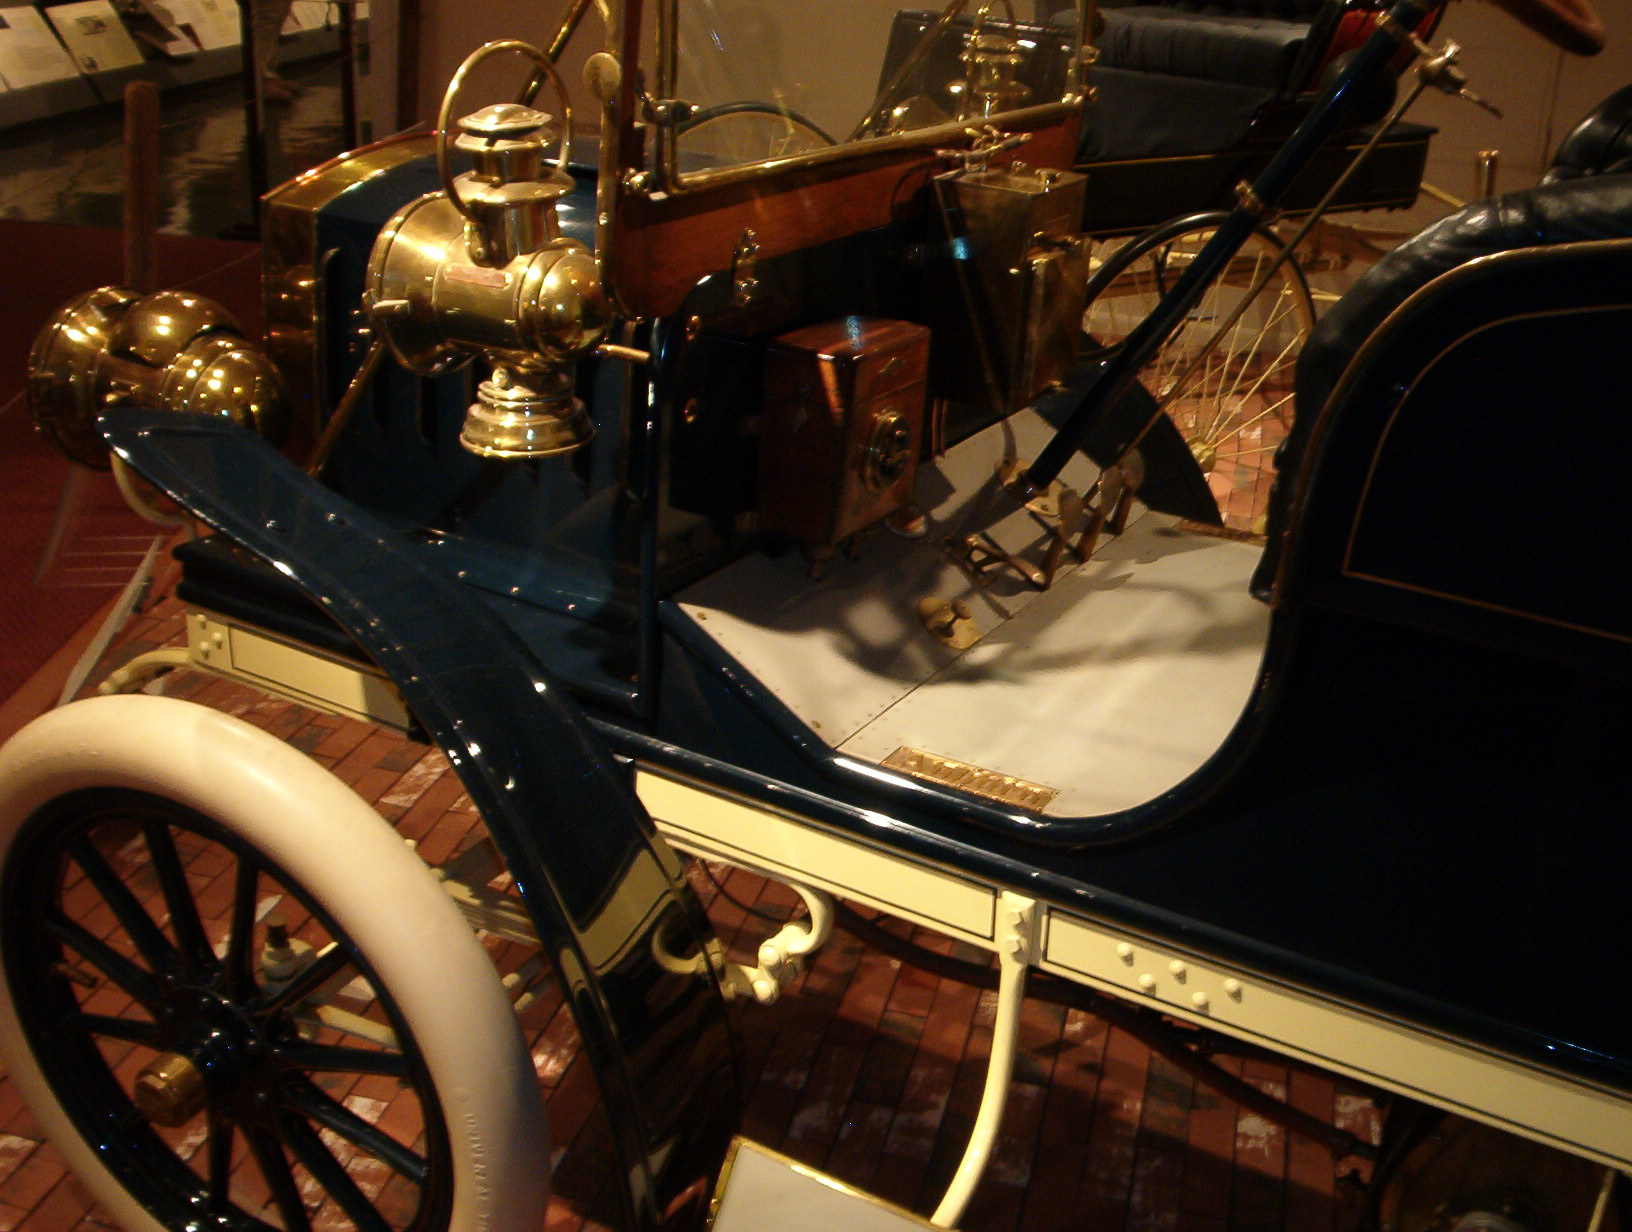 ANTIQUE AUTO MUSEUM AT HERSHEY IN HERSHEY | ANTIQUE AUTO MUSEUM AT